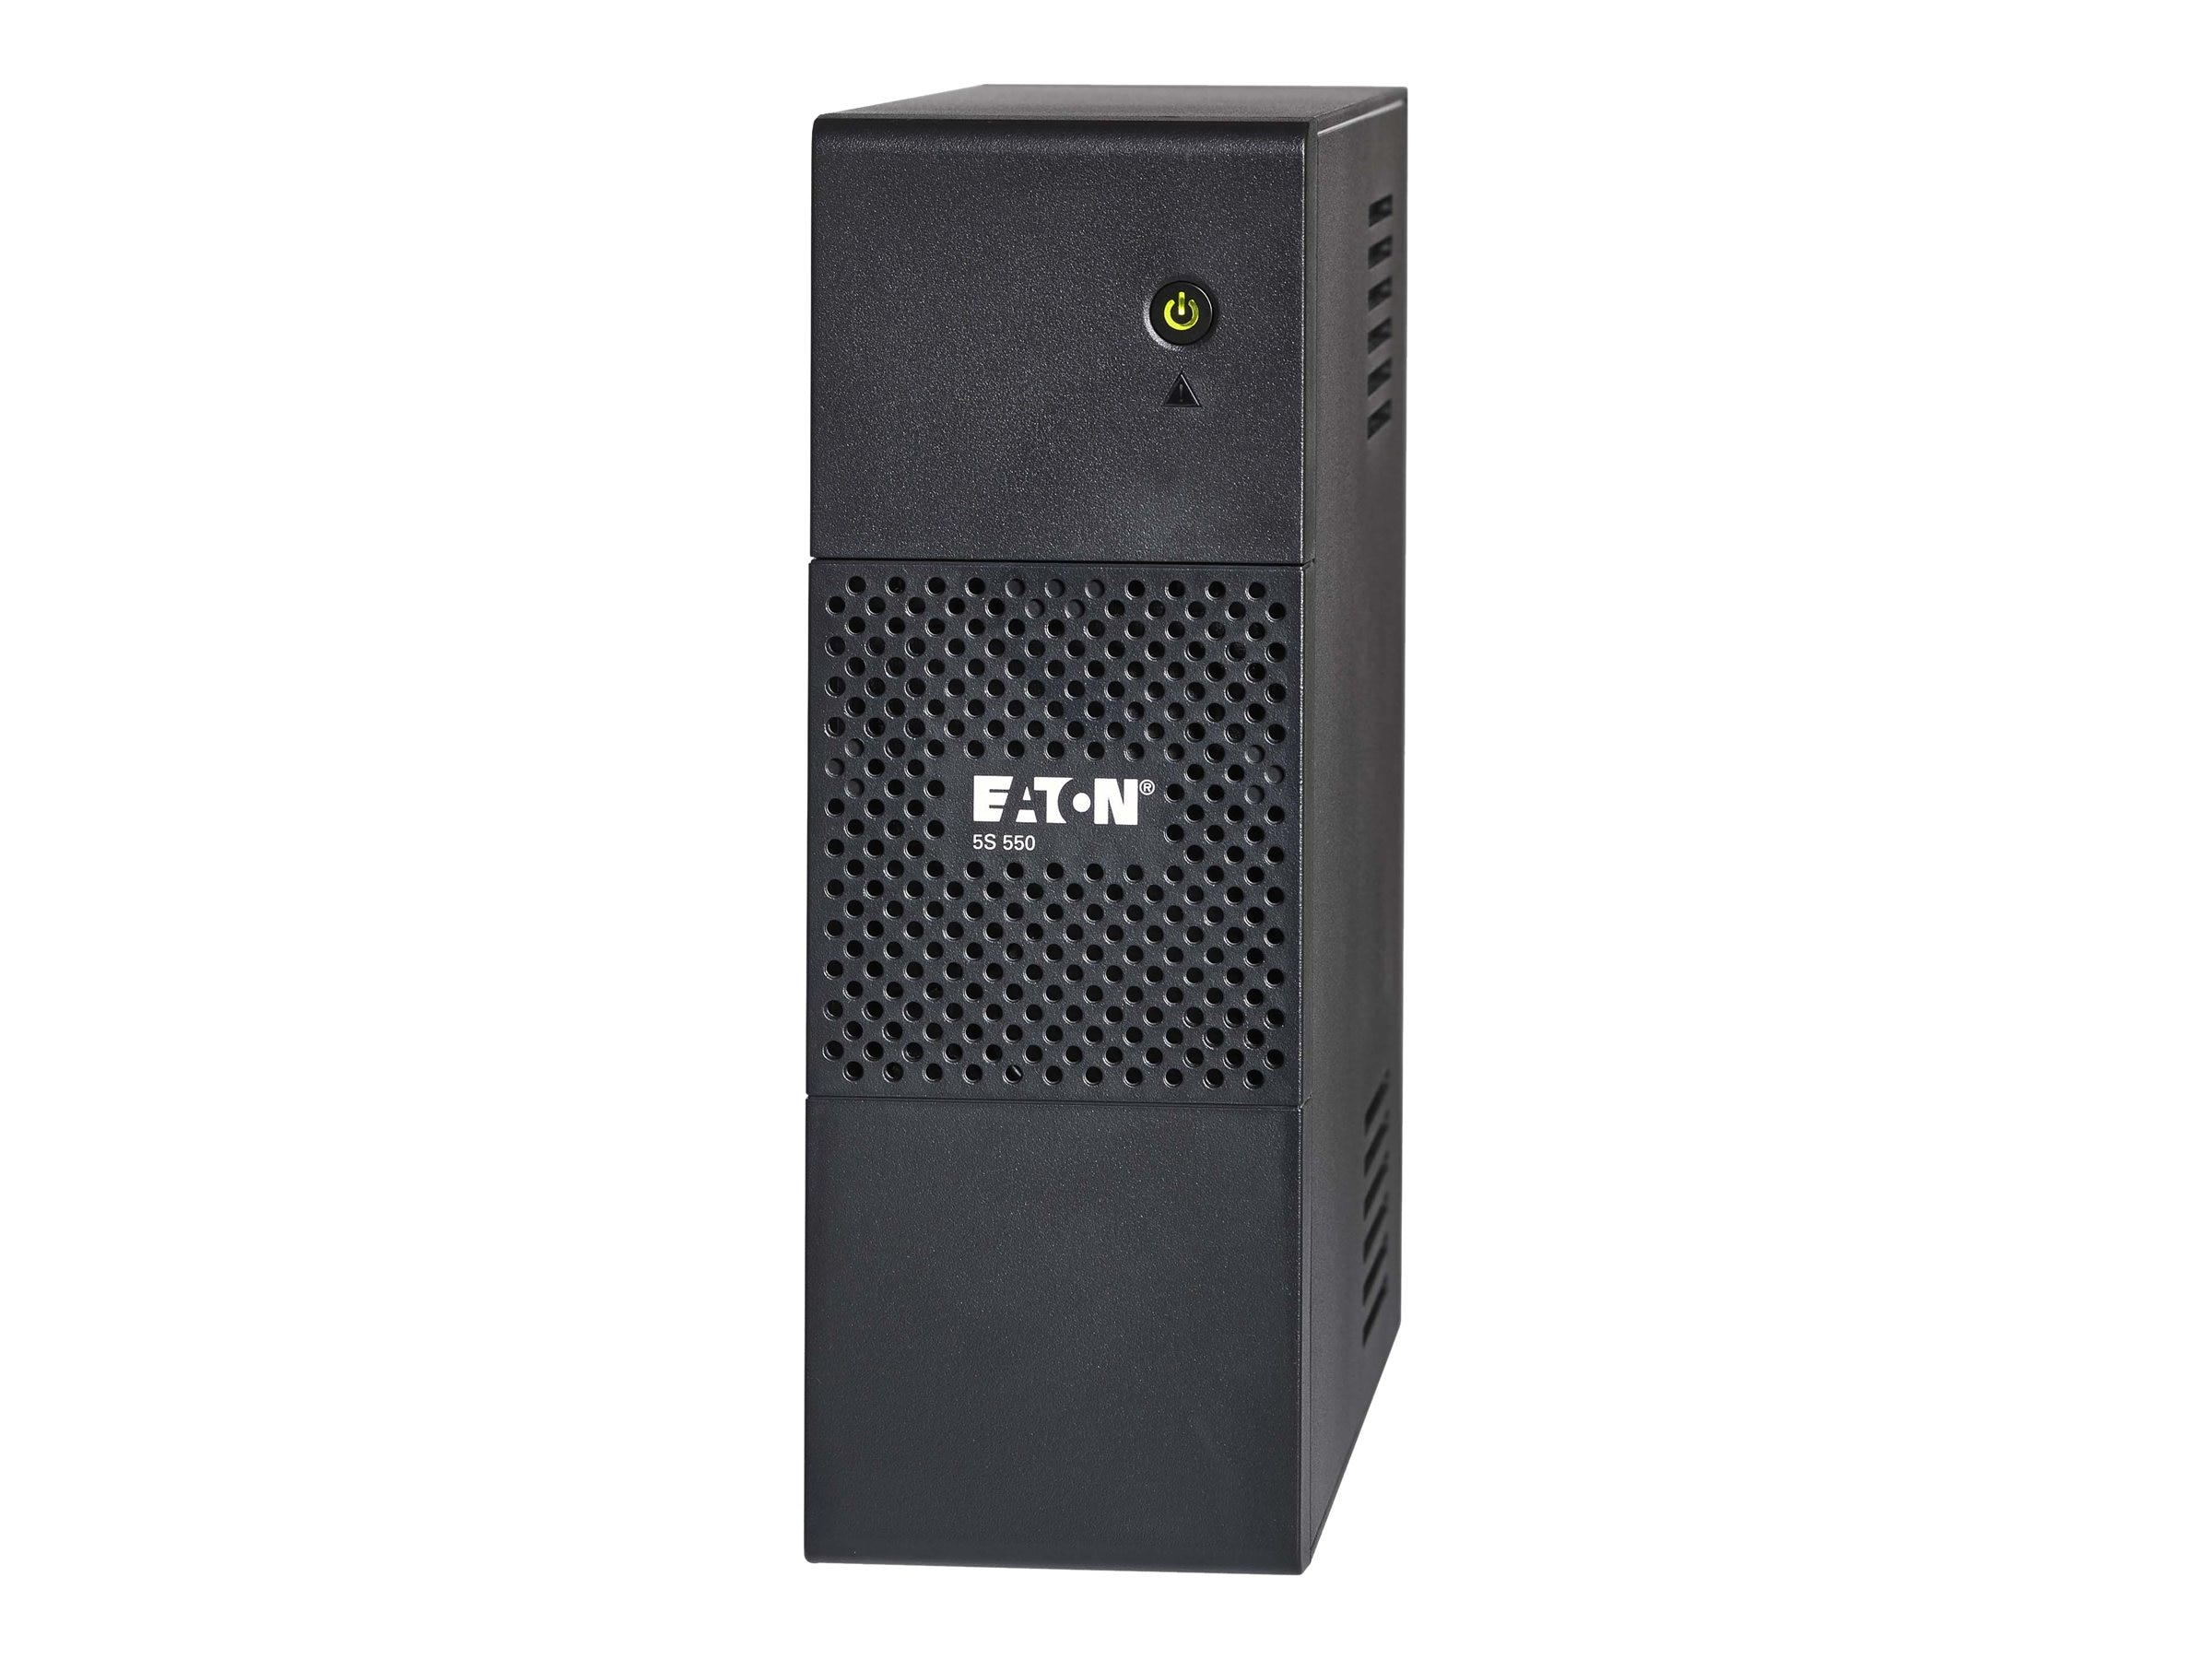 Eaton 5S 700VA 420W 120V Line-interactive Tower UPS 5-15P Input 6ft Cord (8) 5-15R Outlets USB, 5S700, 15792469, Battery Backup/UPS